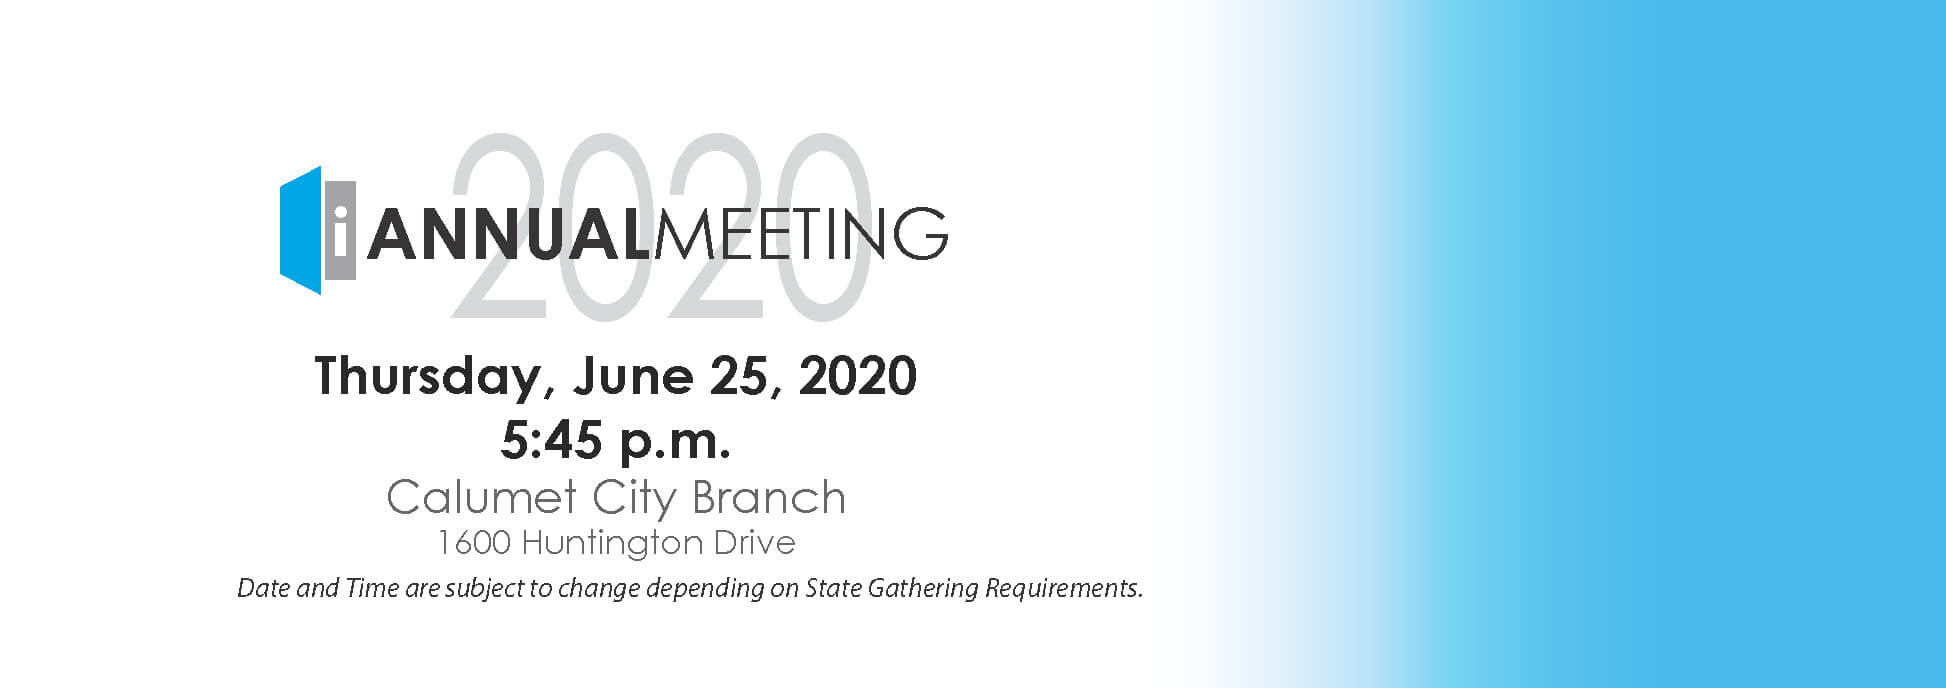 Annual Meeting, Thursday, June 25, 2020 5:45 PM (Date and Time subject to change)